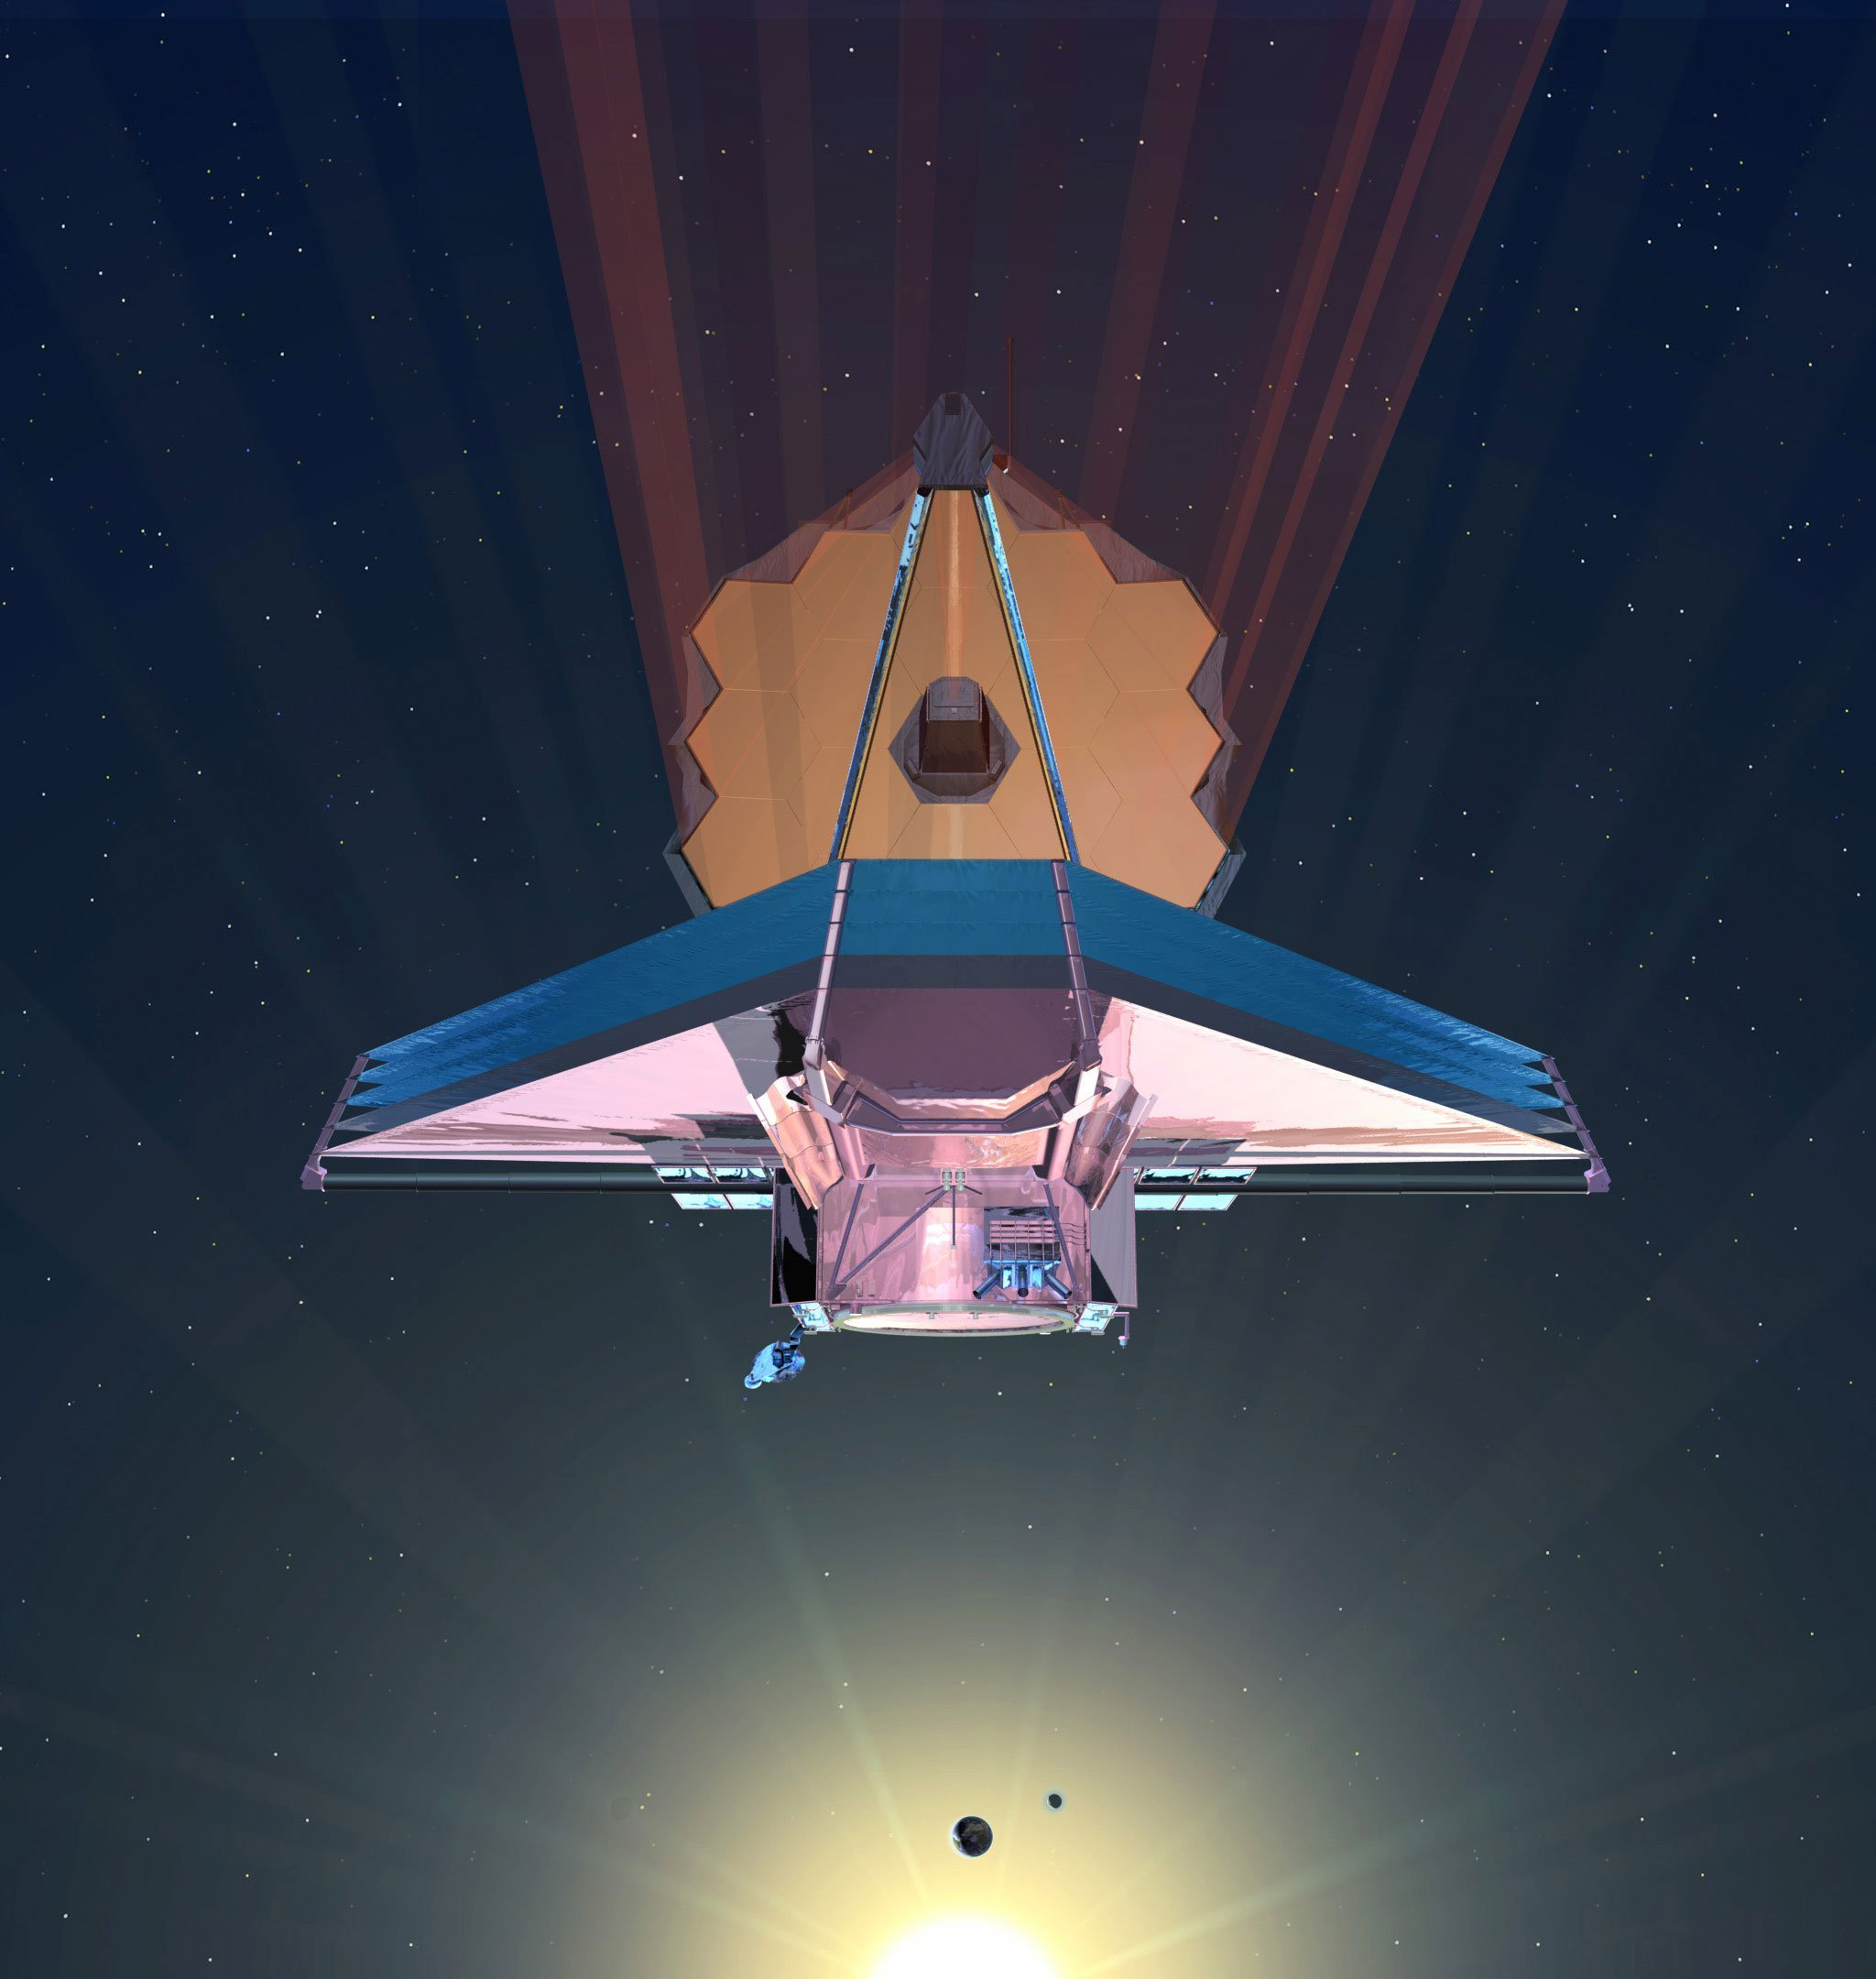 An artist's rendition of the James Webb Space Telescope in space.